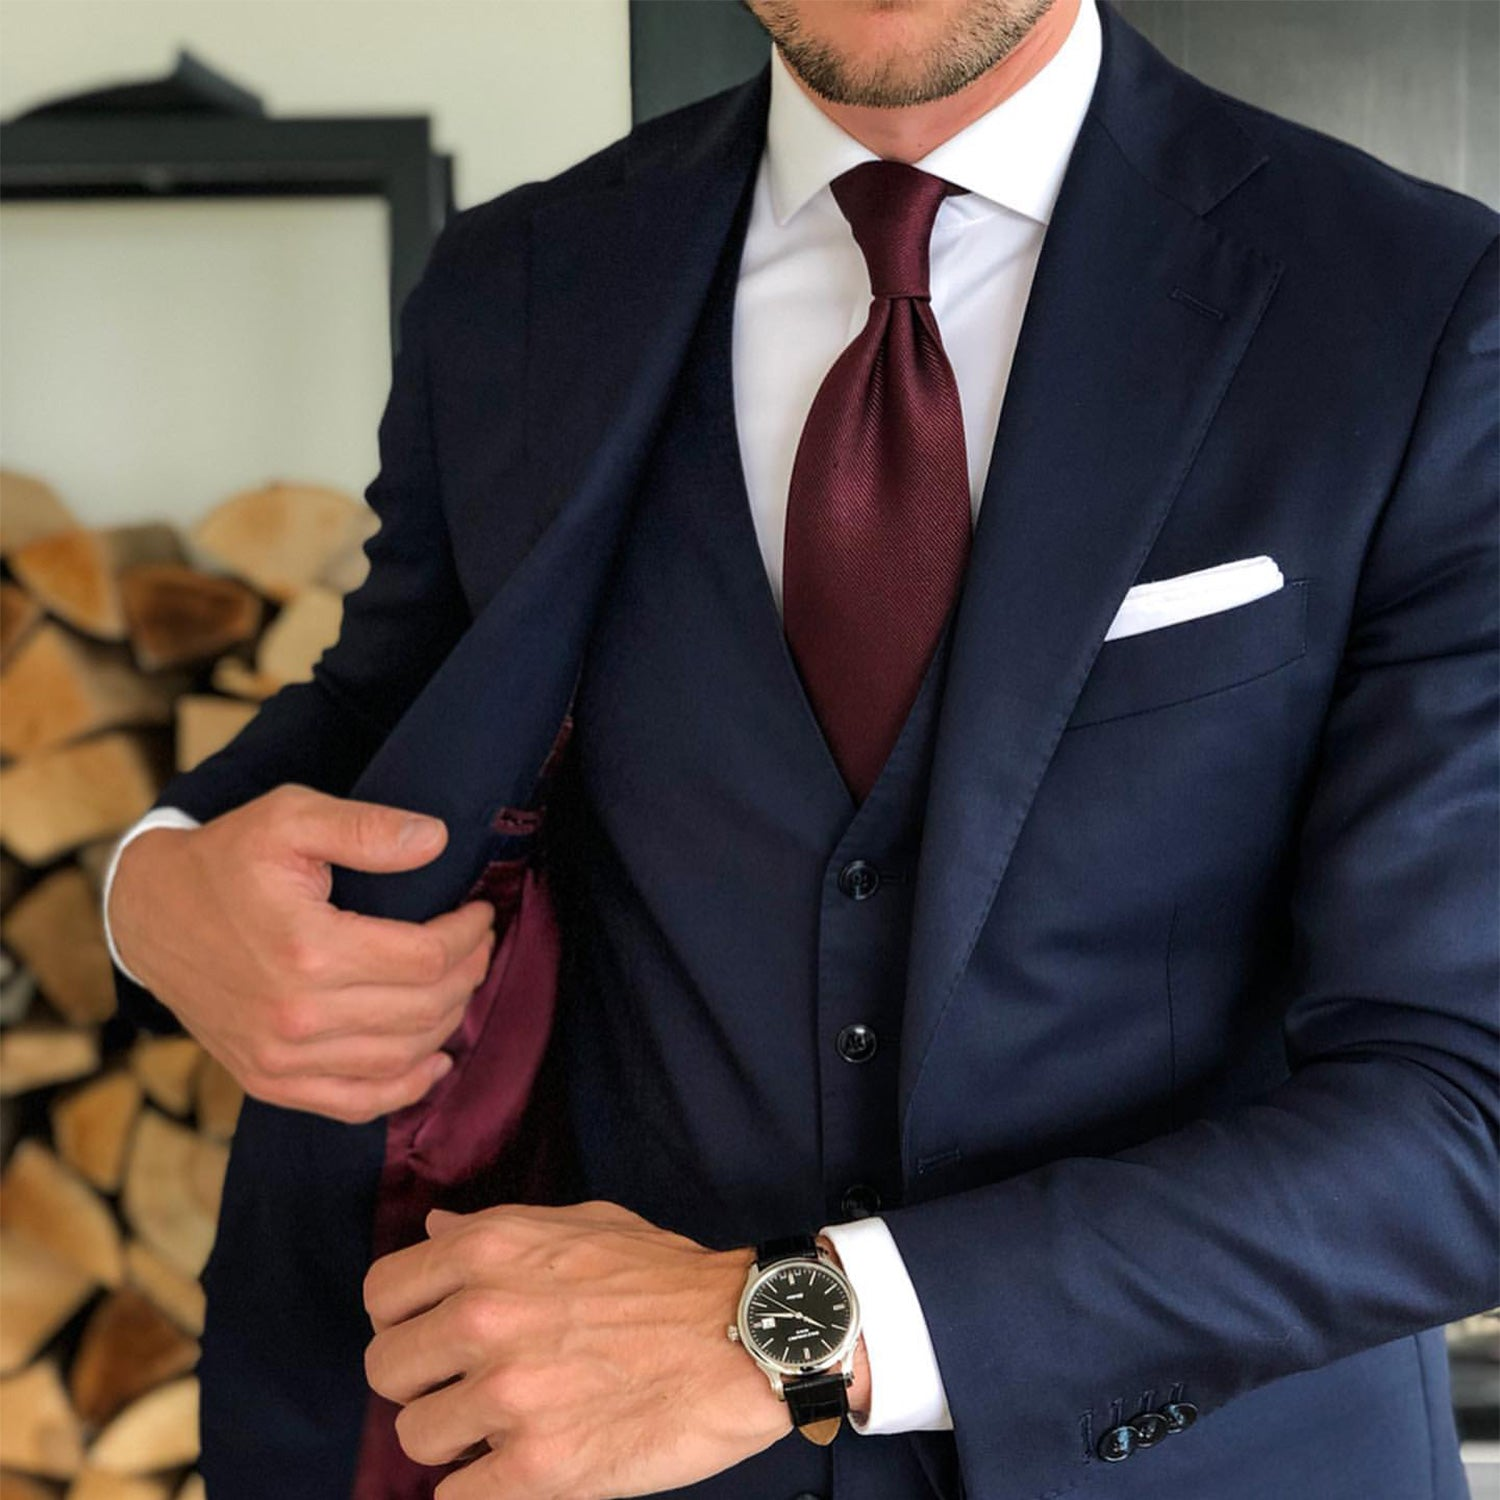 Burgundy Tie with Navy Suit Artworth Brothers